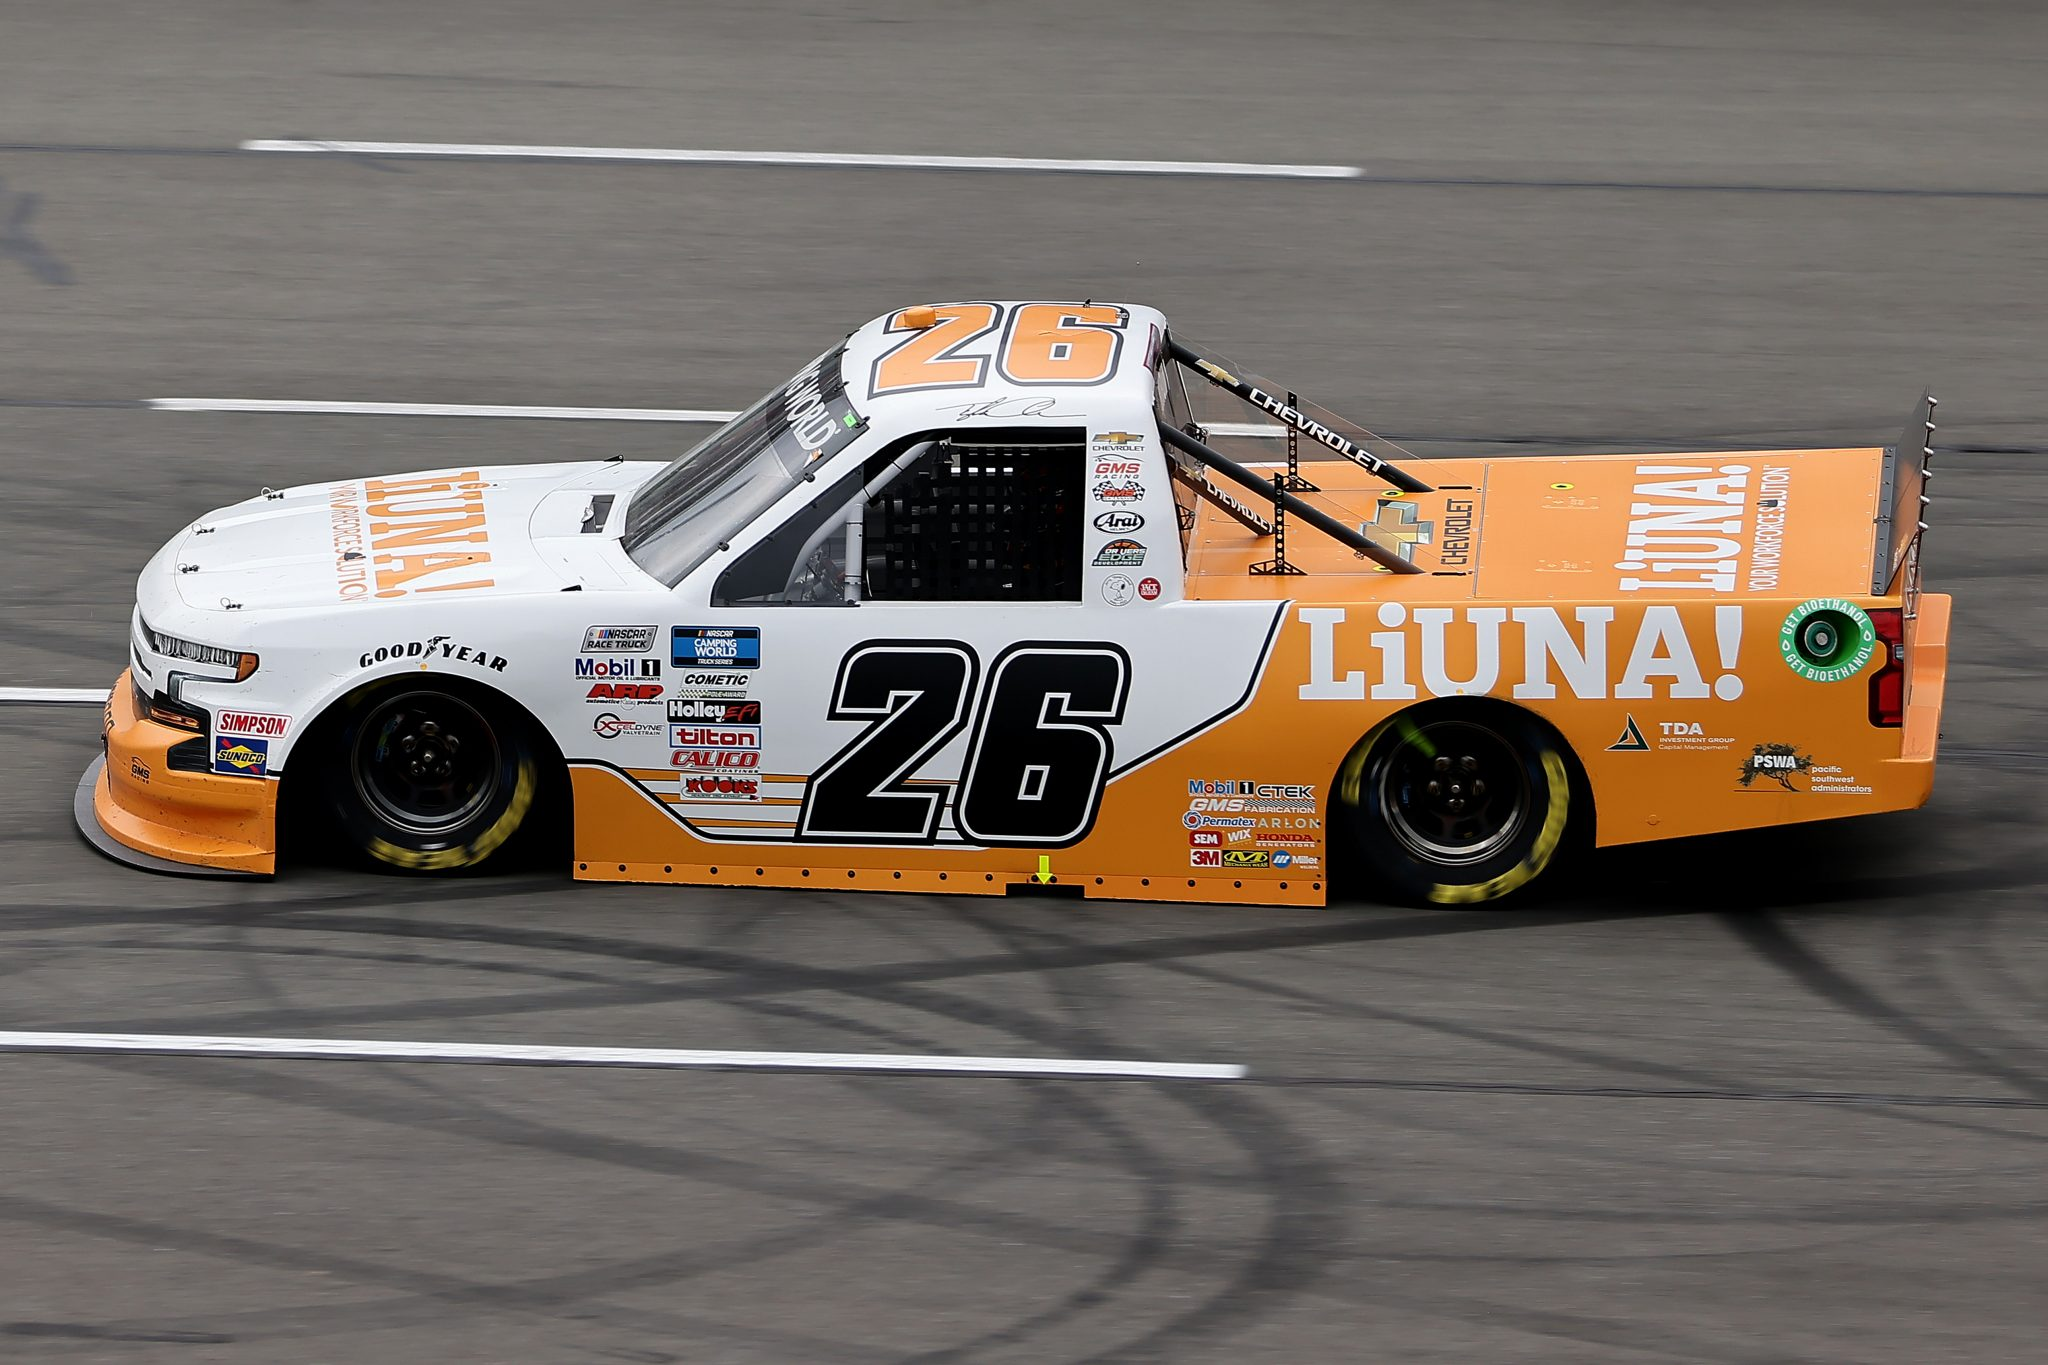 LONG POND, PENNSYLVANIA - JUNE 26: Tyler Ankrum, driver of the #26 LiUNA! Chevrolet, drives during the NASCAR Camping World Truck Series CRC Brakleen 150 at Pocono Raceway on June 26, 2021 in Long Pond, Pennsylvania. (Photo by James Gilbert/Getty Images) | Getty Images